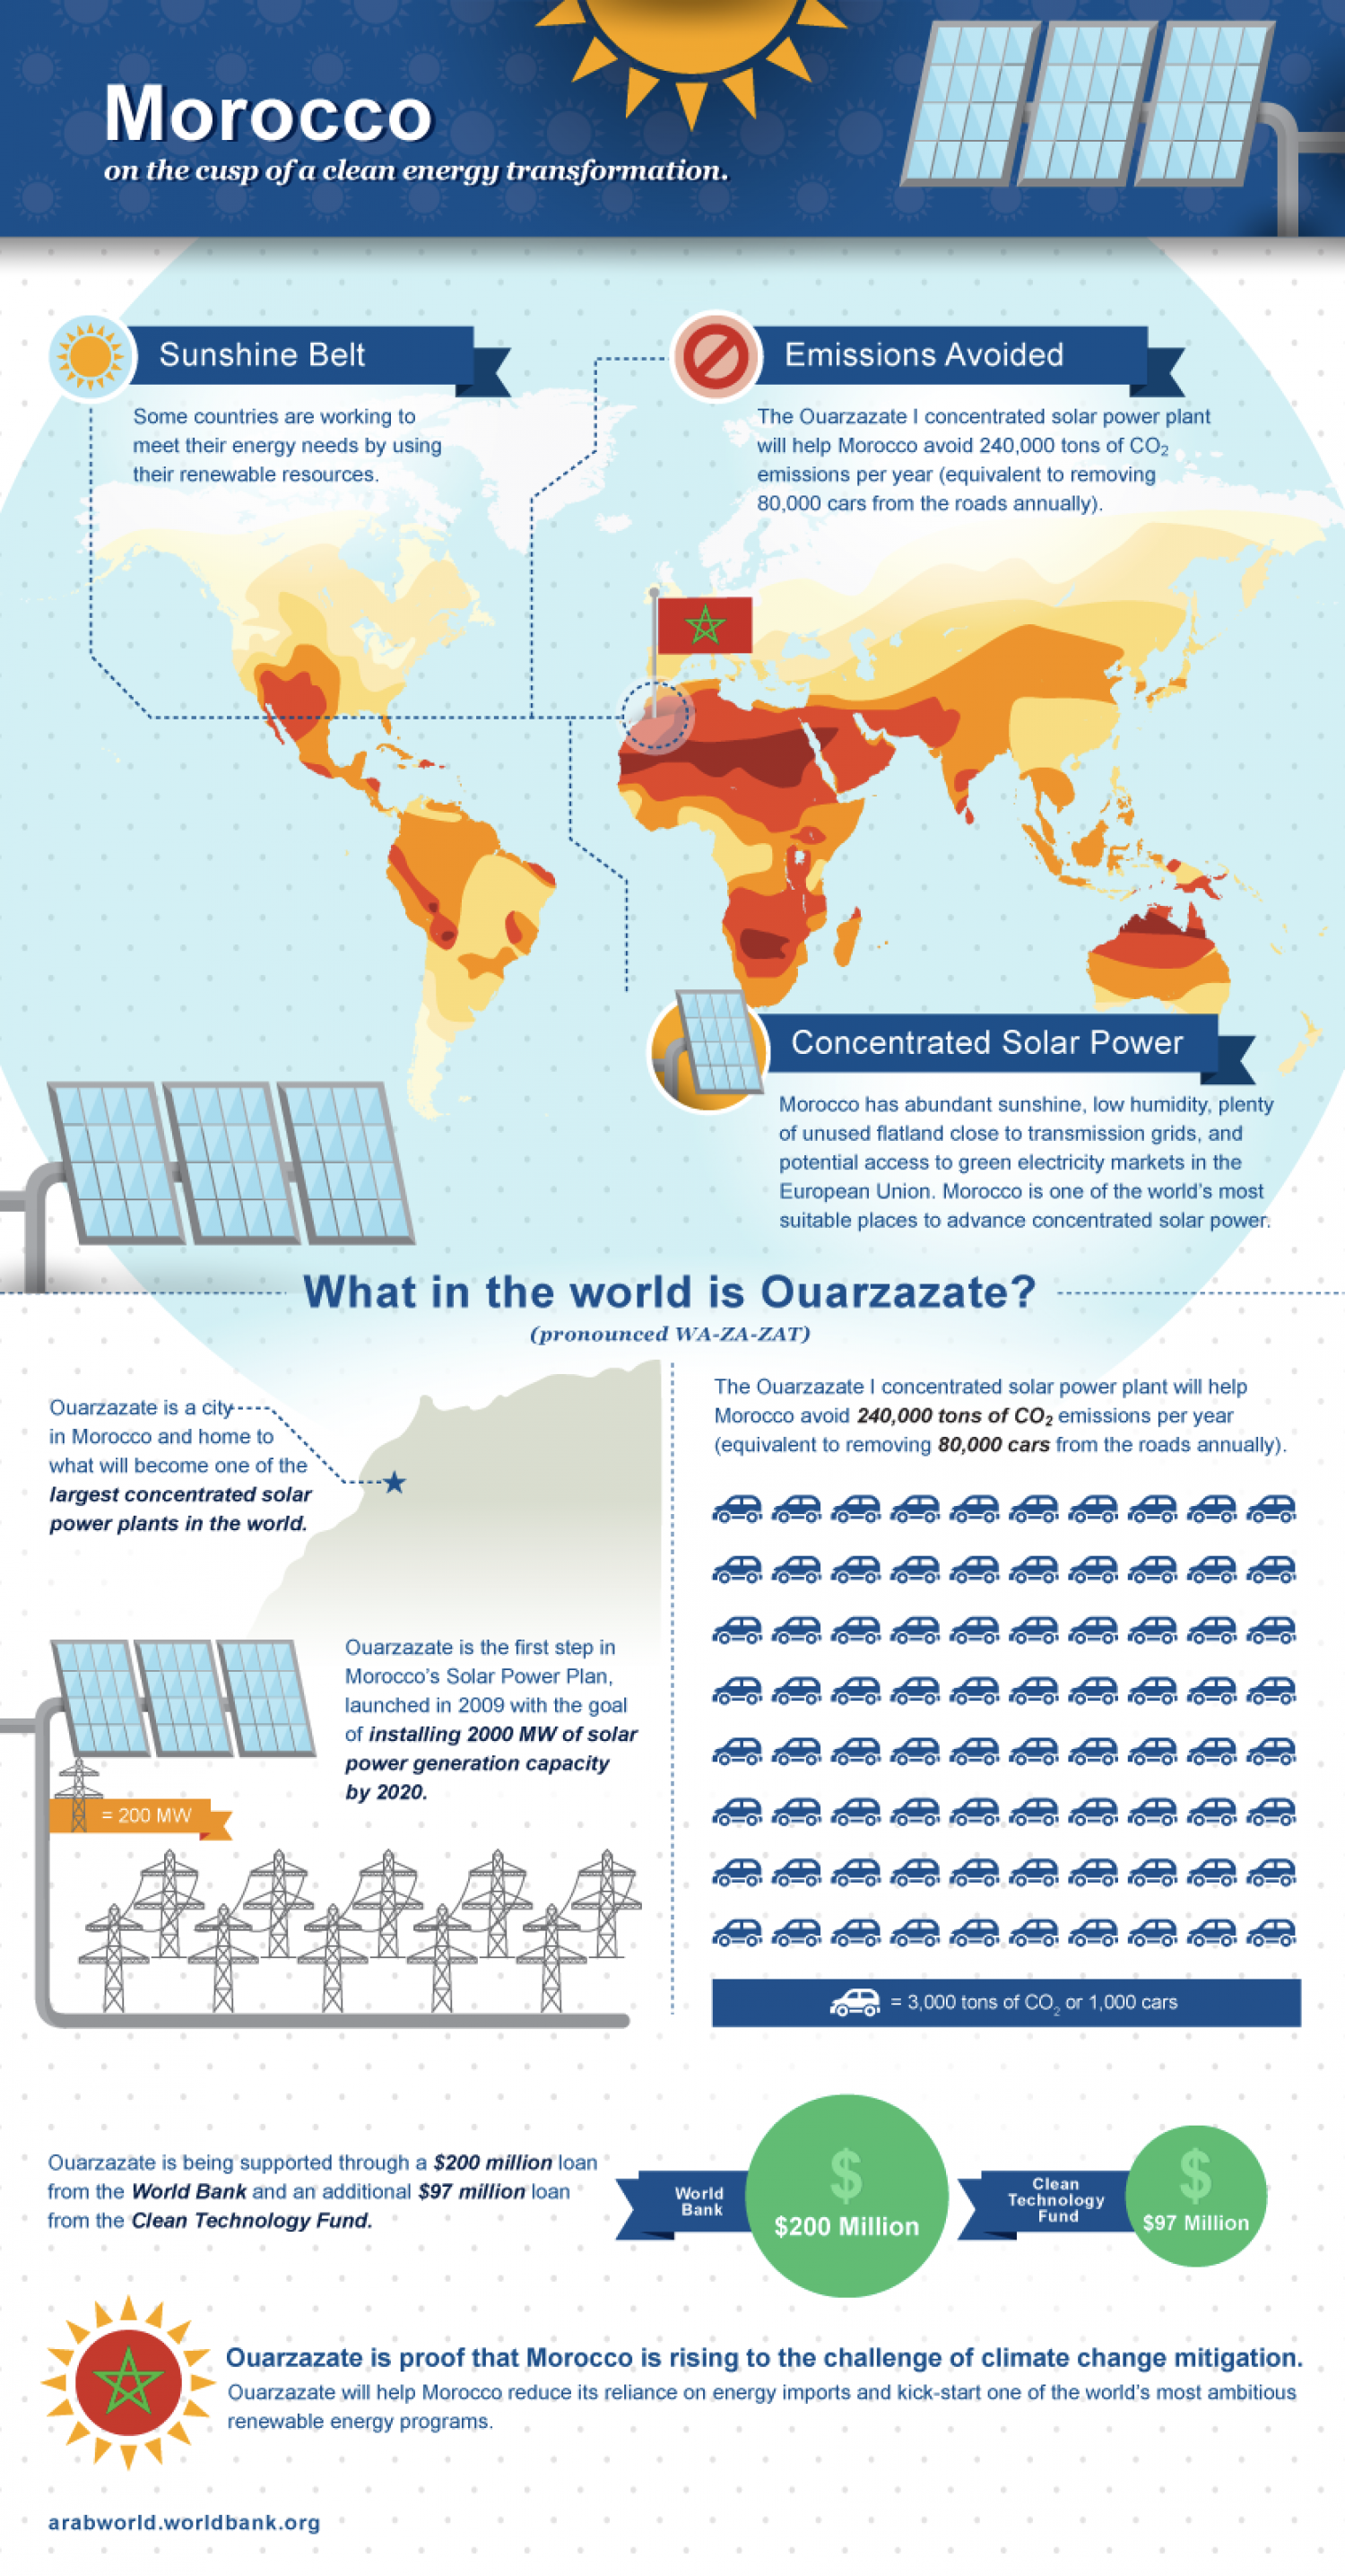 Morocco on the cusp of a clean energy transformation Infographic